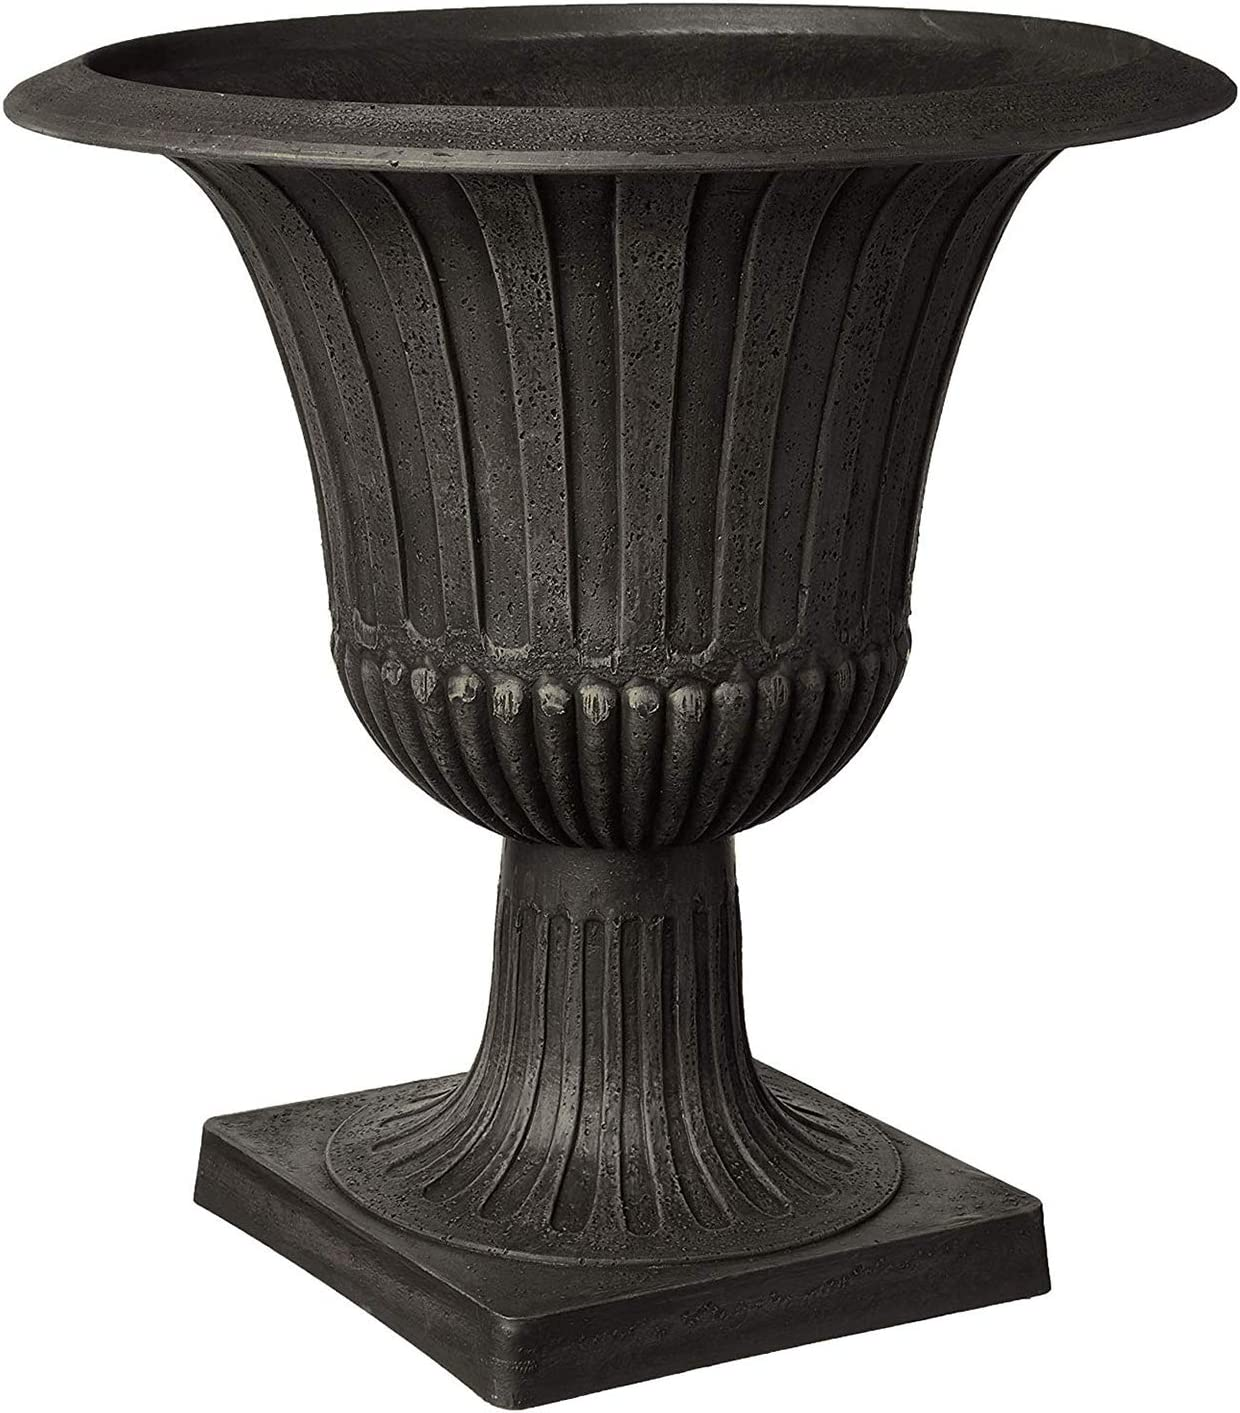 "Arcadia Garden Products G50BK Worthington Urn, 20 by 21"", Black, Inches"